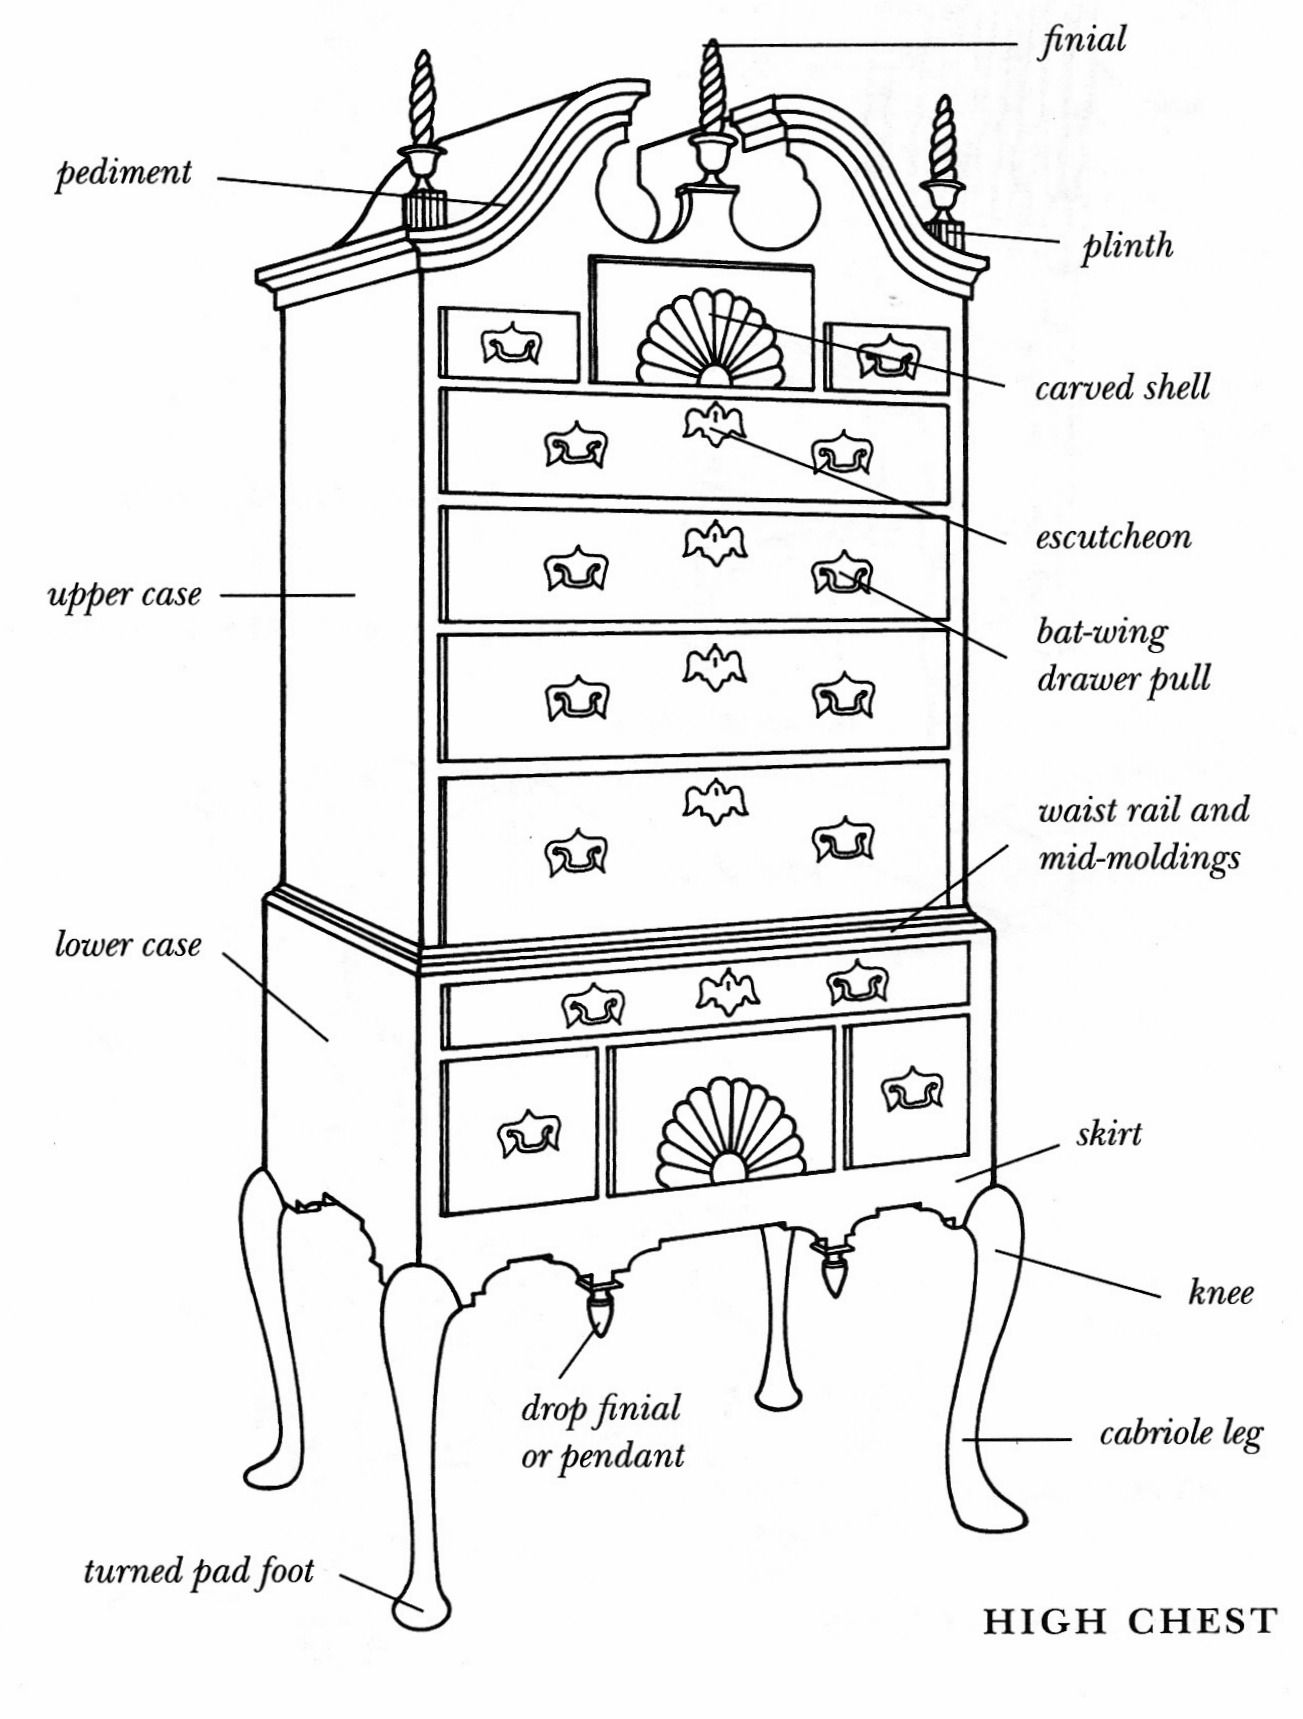 Diagram Of A High Chest Diagrams Antique Furniture In 2019 Interior Design History Prestige Repair Styles Making